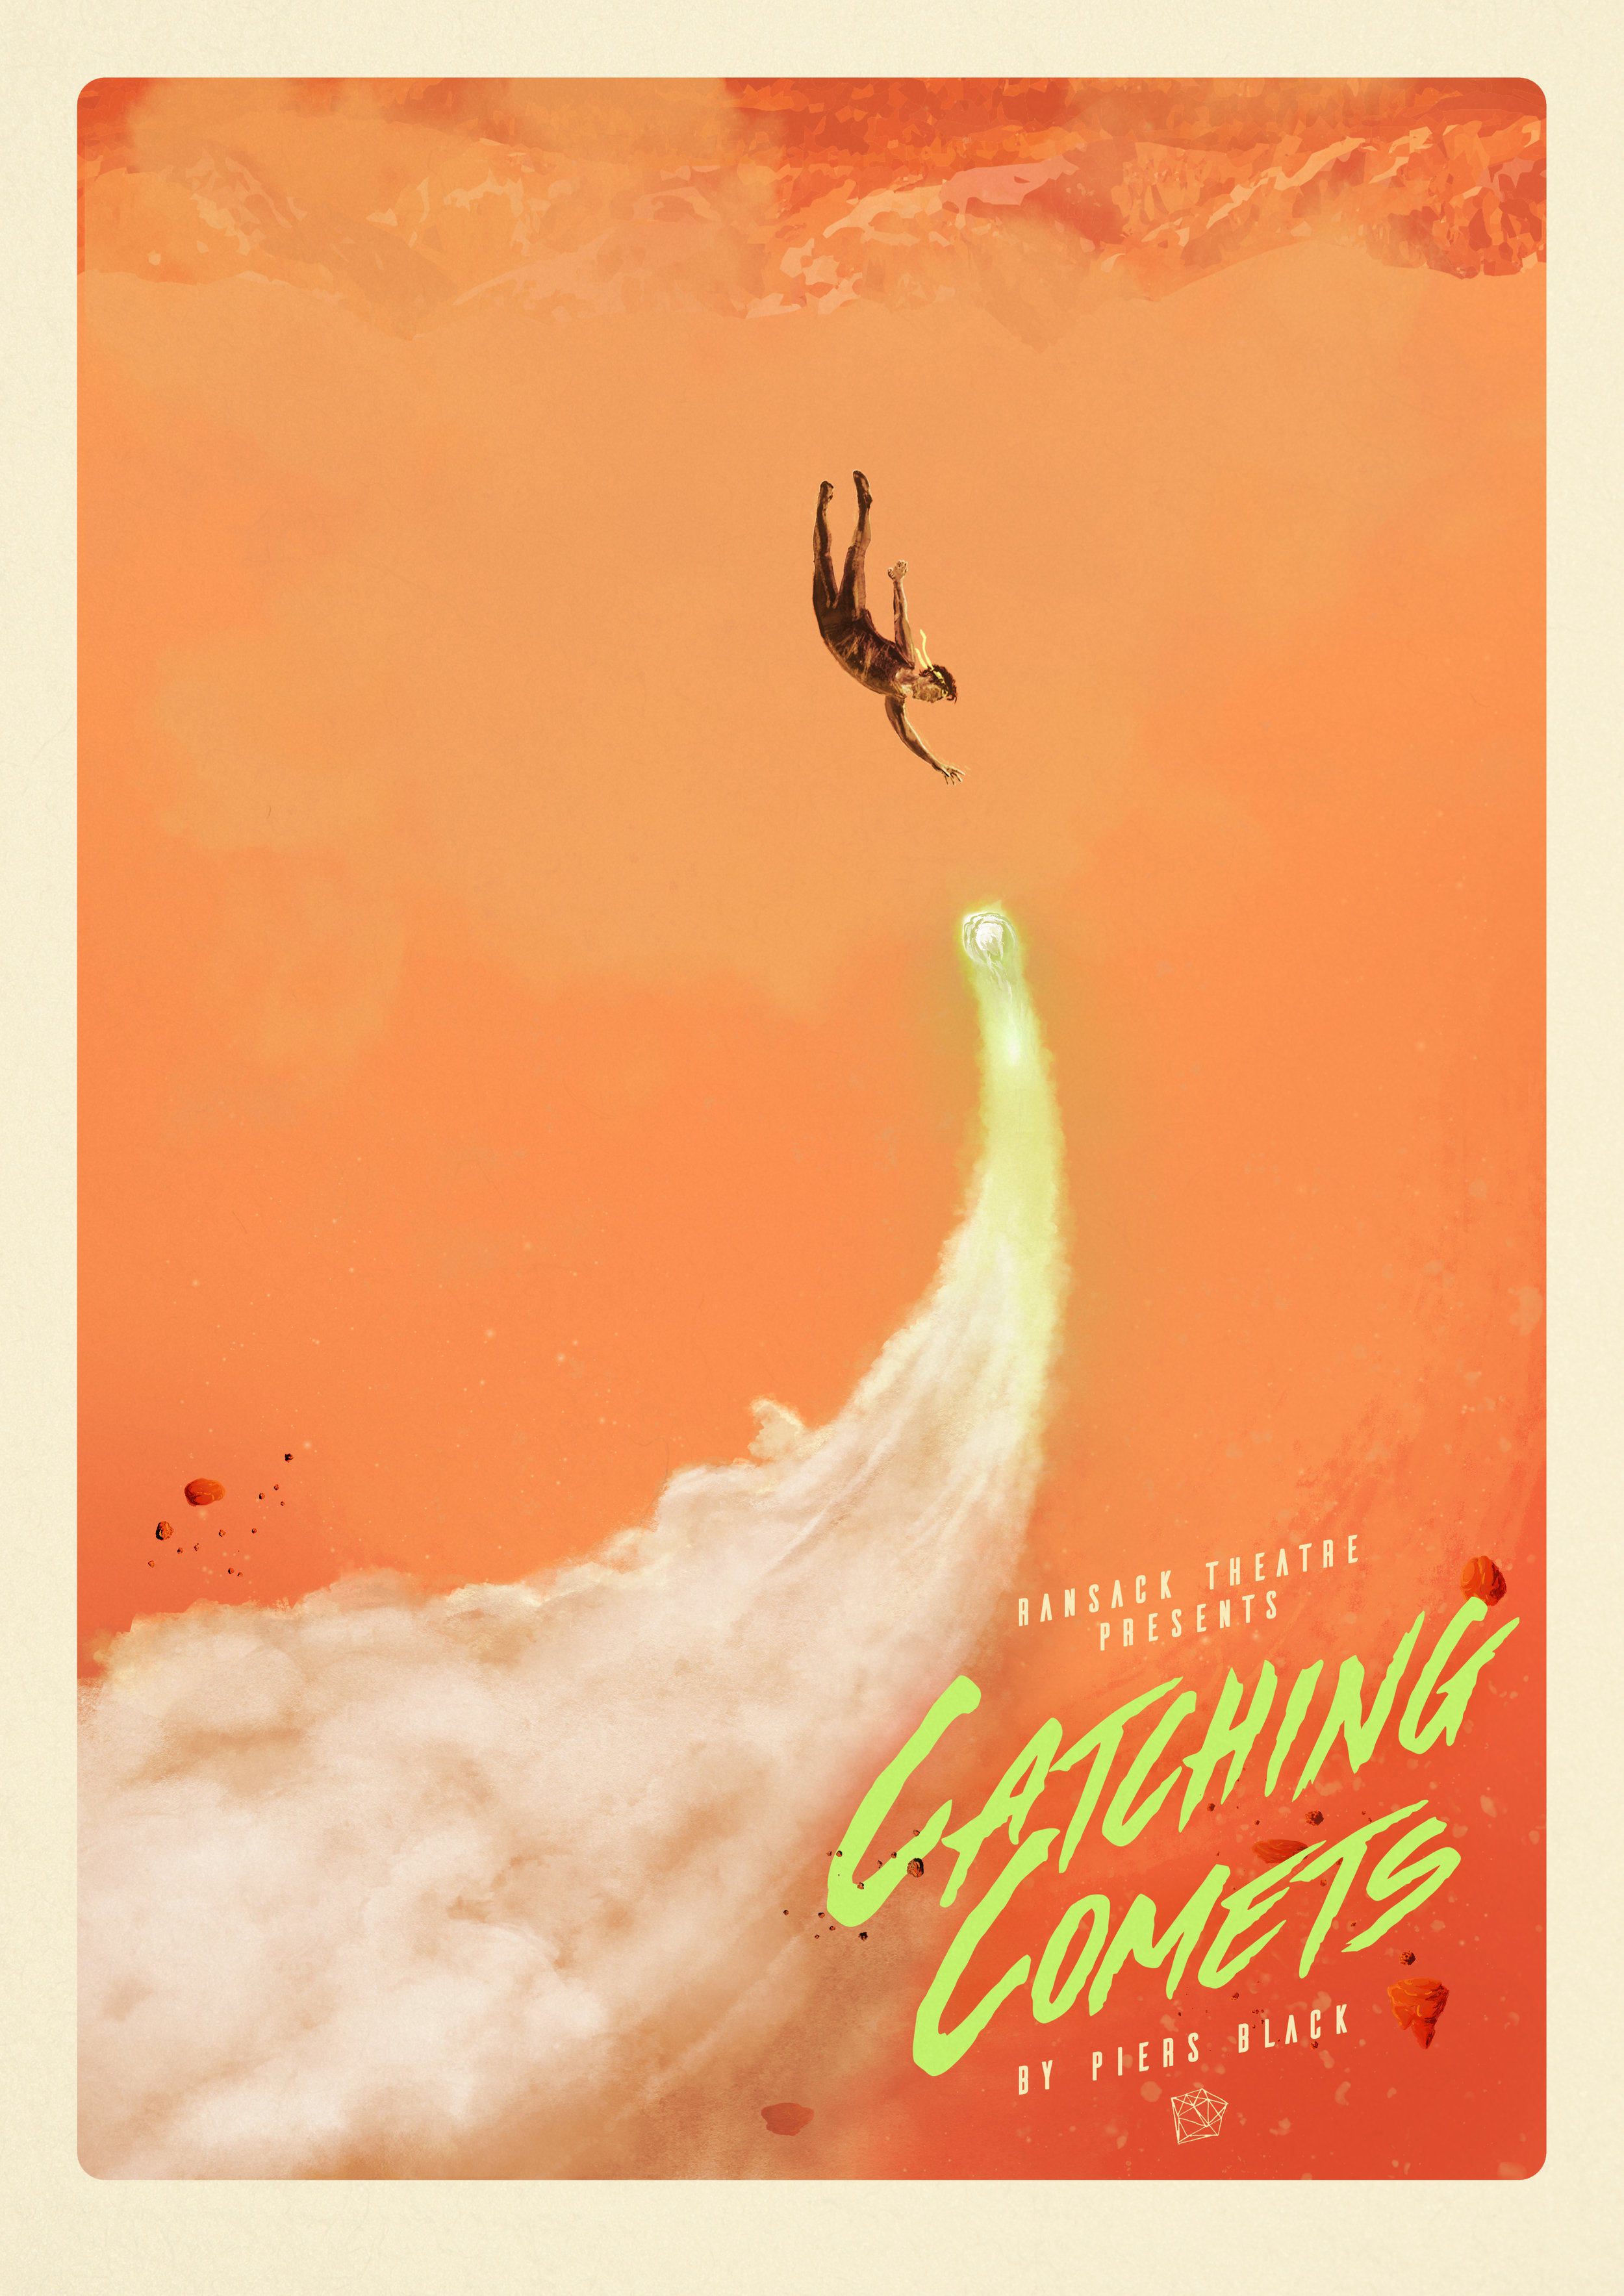 Catching Comets Poster.jpg